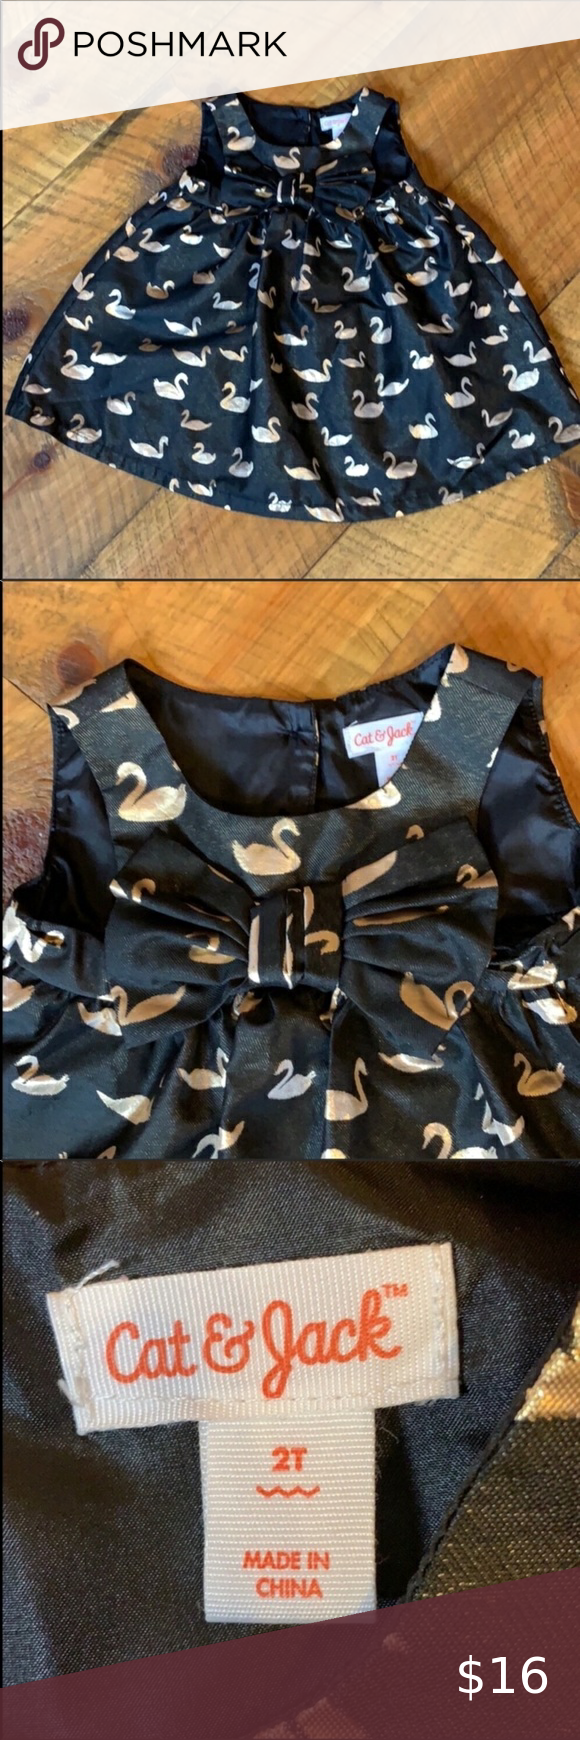 Cat Jack Black Dress With Gold Swan Print 2t Cat Jack Dress 2t Black With Shiny Gold Swan Print Oversize Bow On The Front Swan Dress Jack Black [ 1740 x 580 Pixel ]